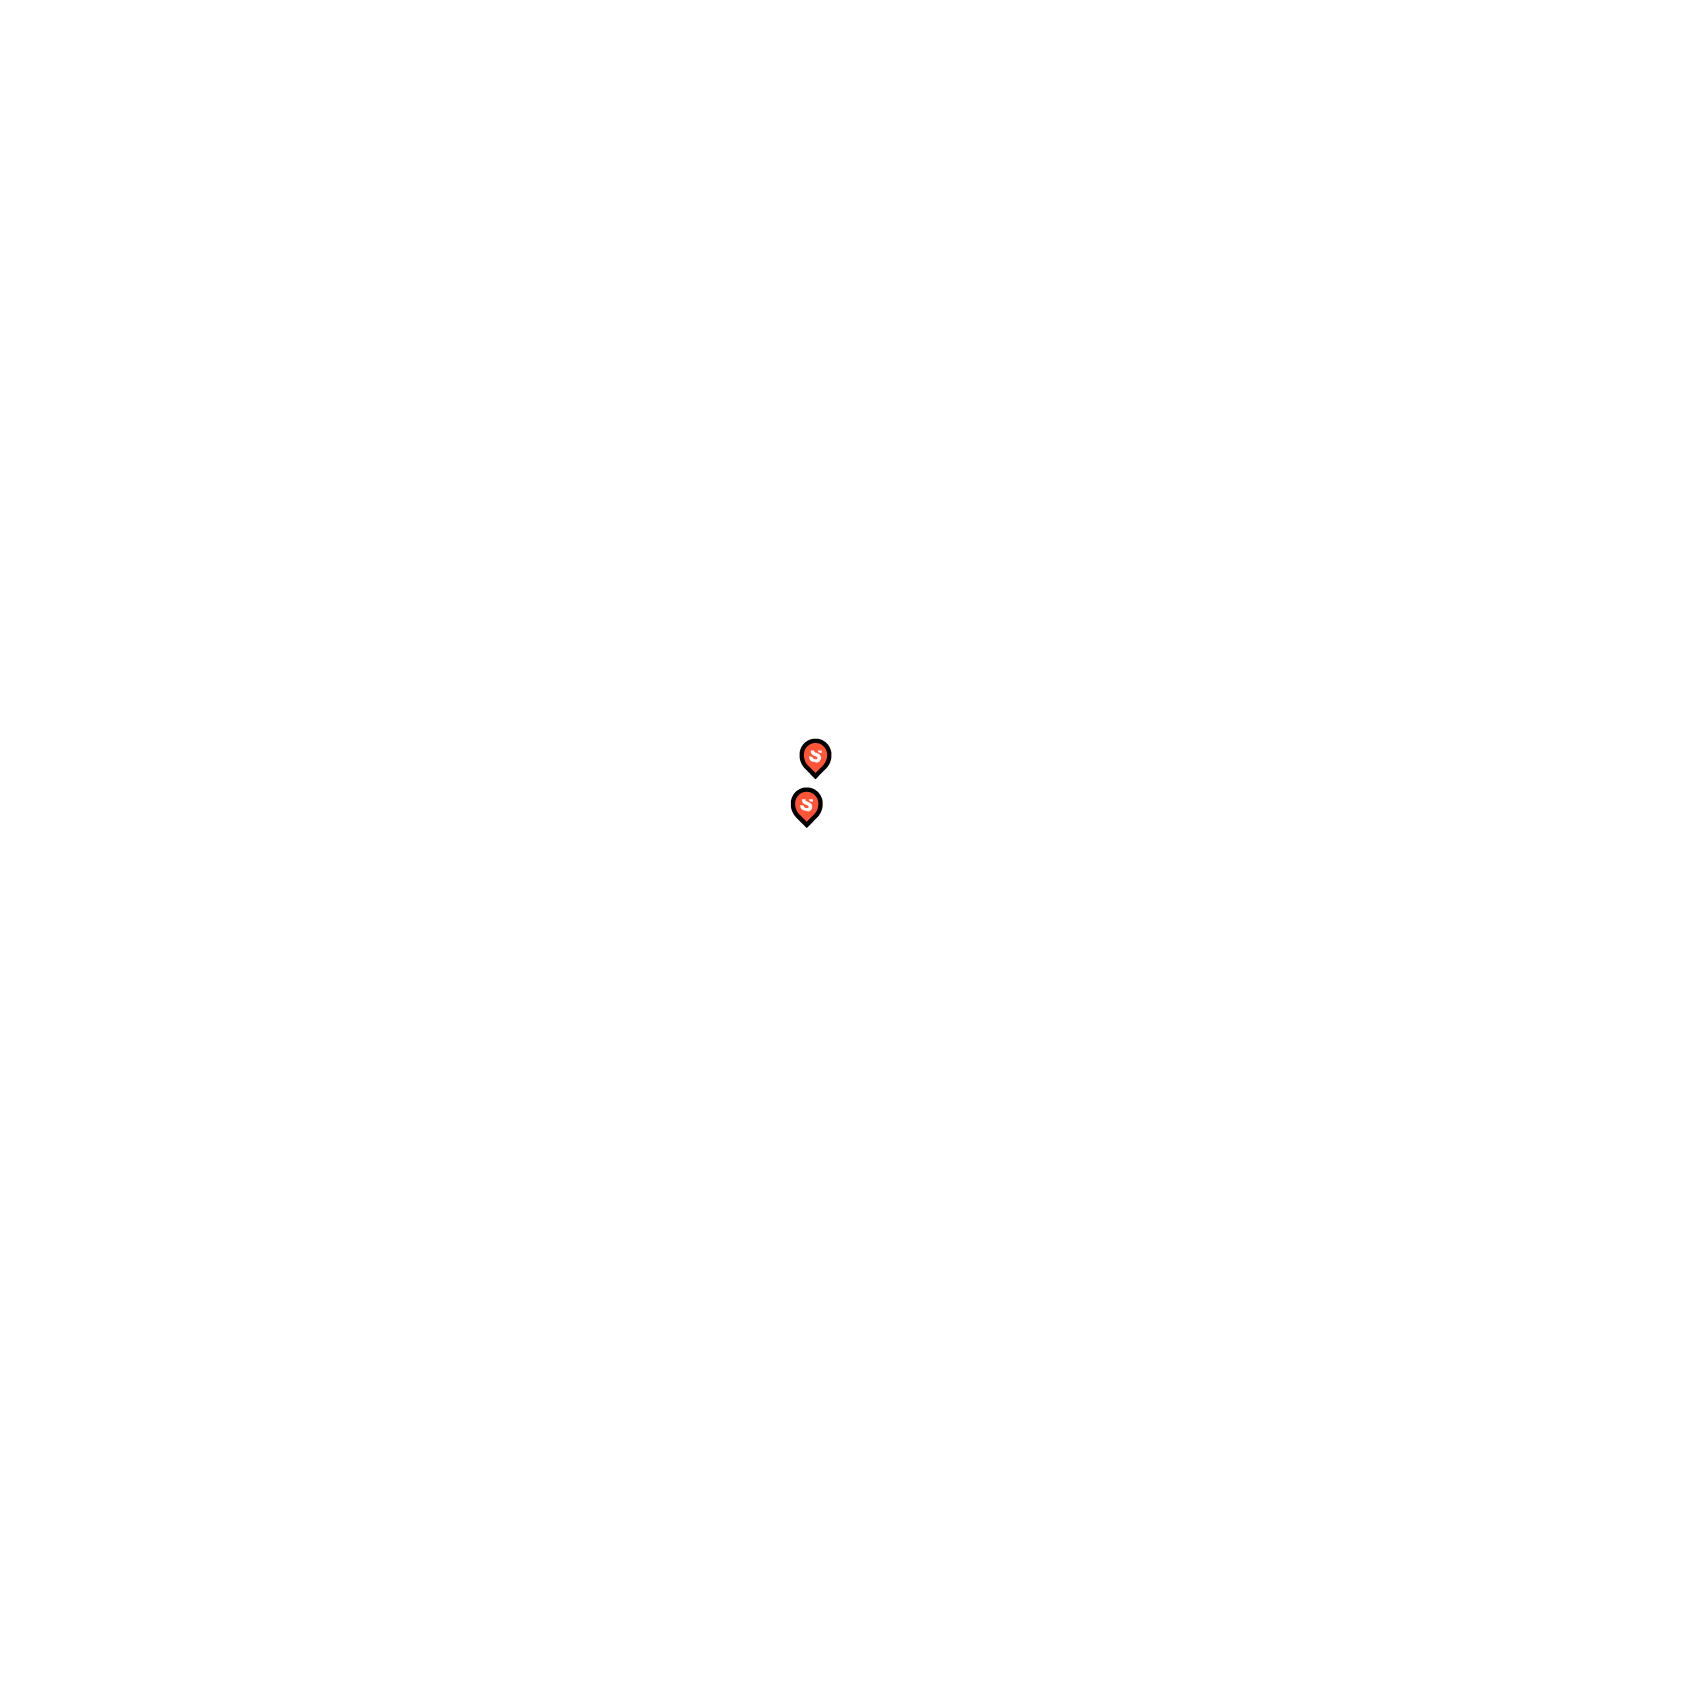 Black and white map of the CANADA